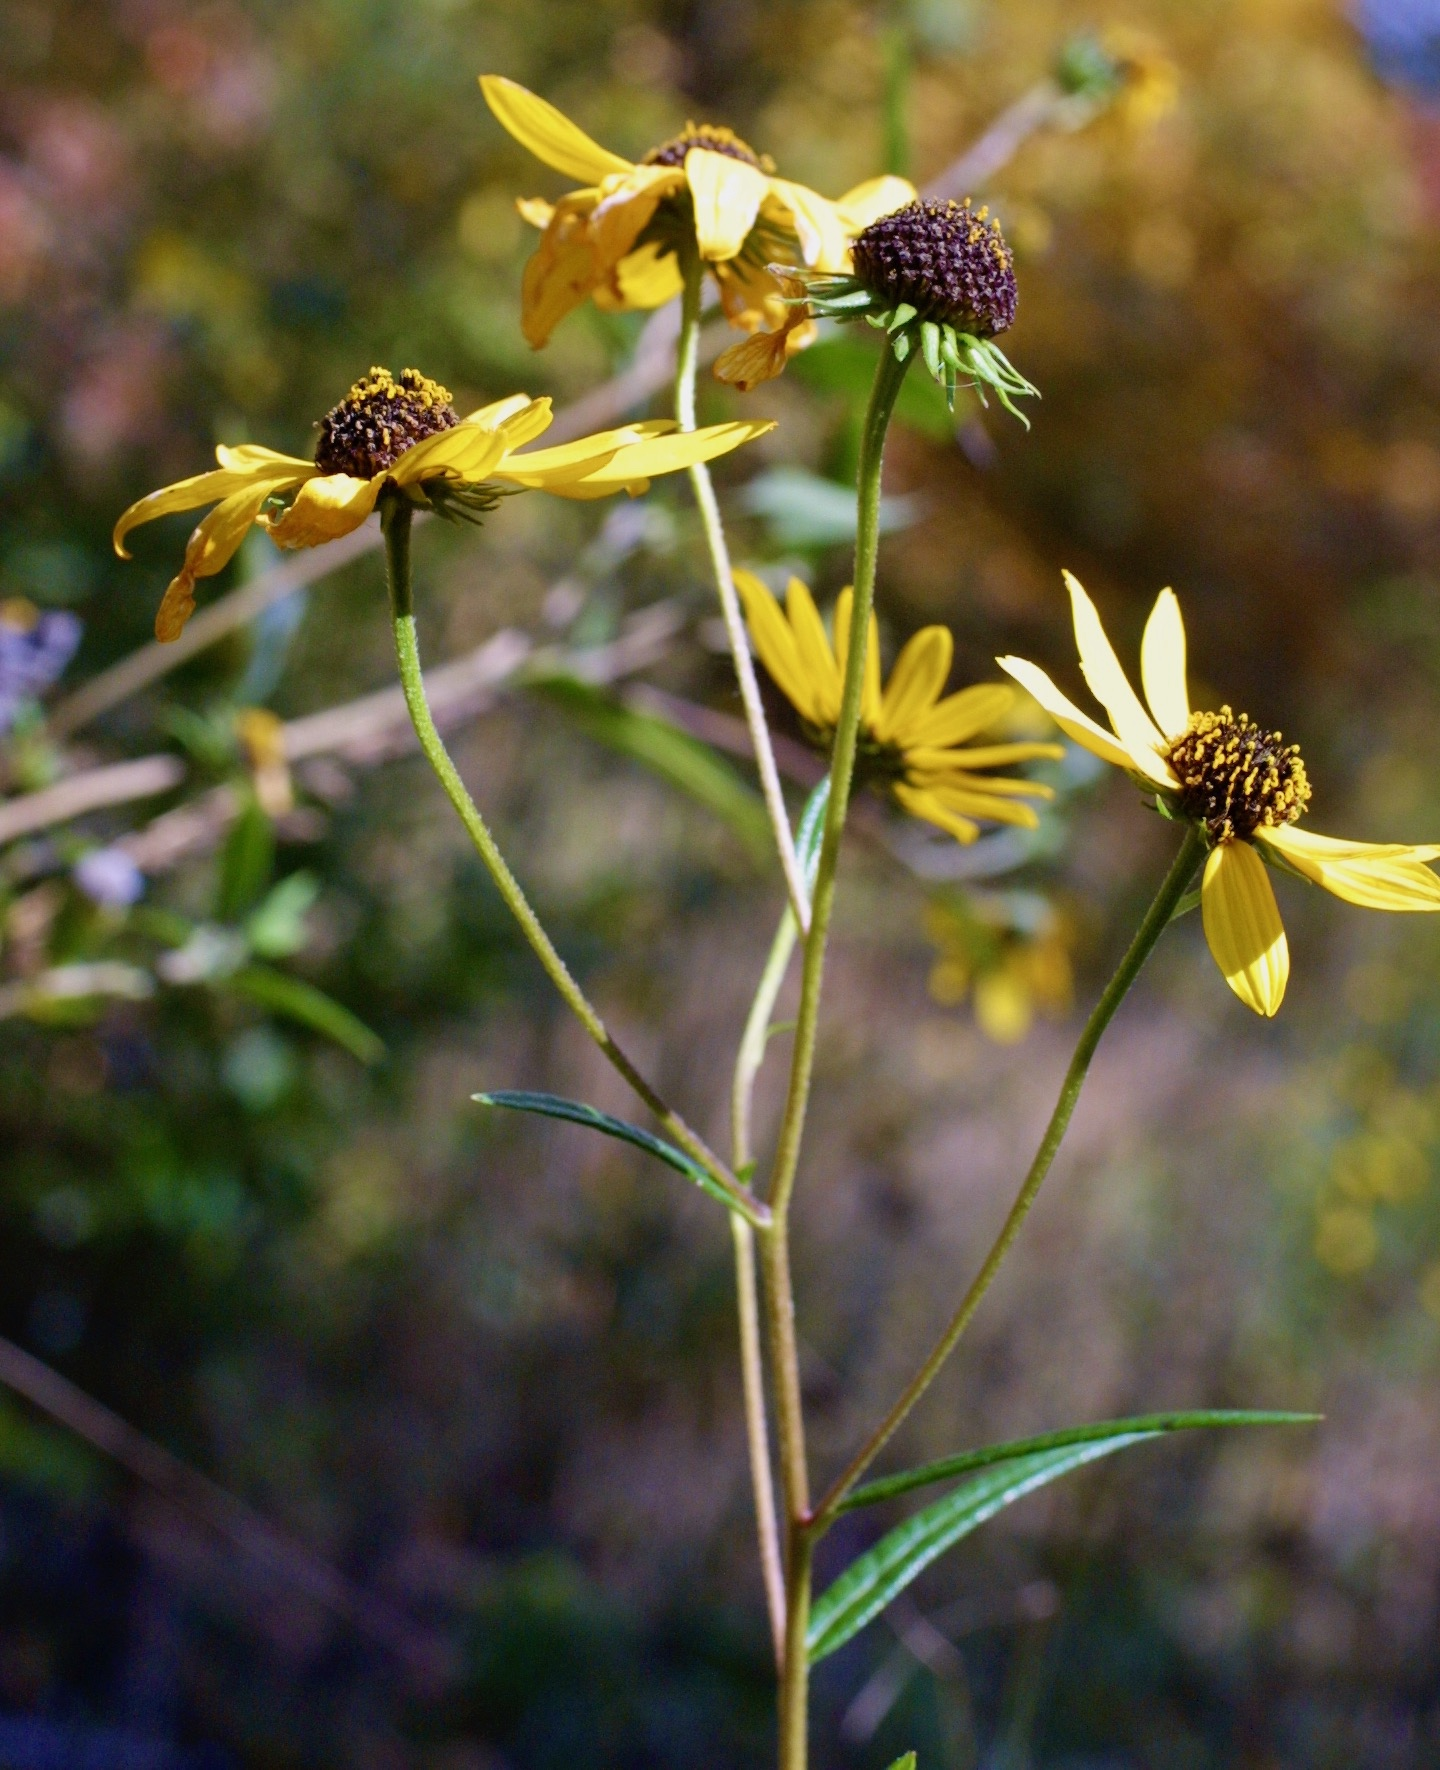 The Scientific Name is Helianthus angustifolius. You will likely hear them called Narrowleaf Sunflower, Swamp Sunflower. This picture shows the Narrow, sessile leaves and narrow, pointed, overlapping bracts of Helianthus angustifolius